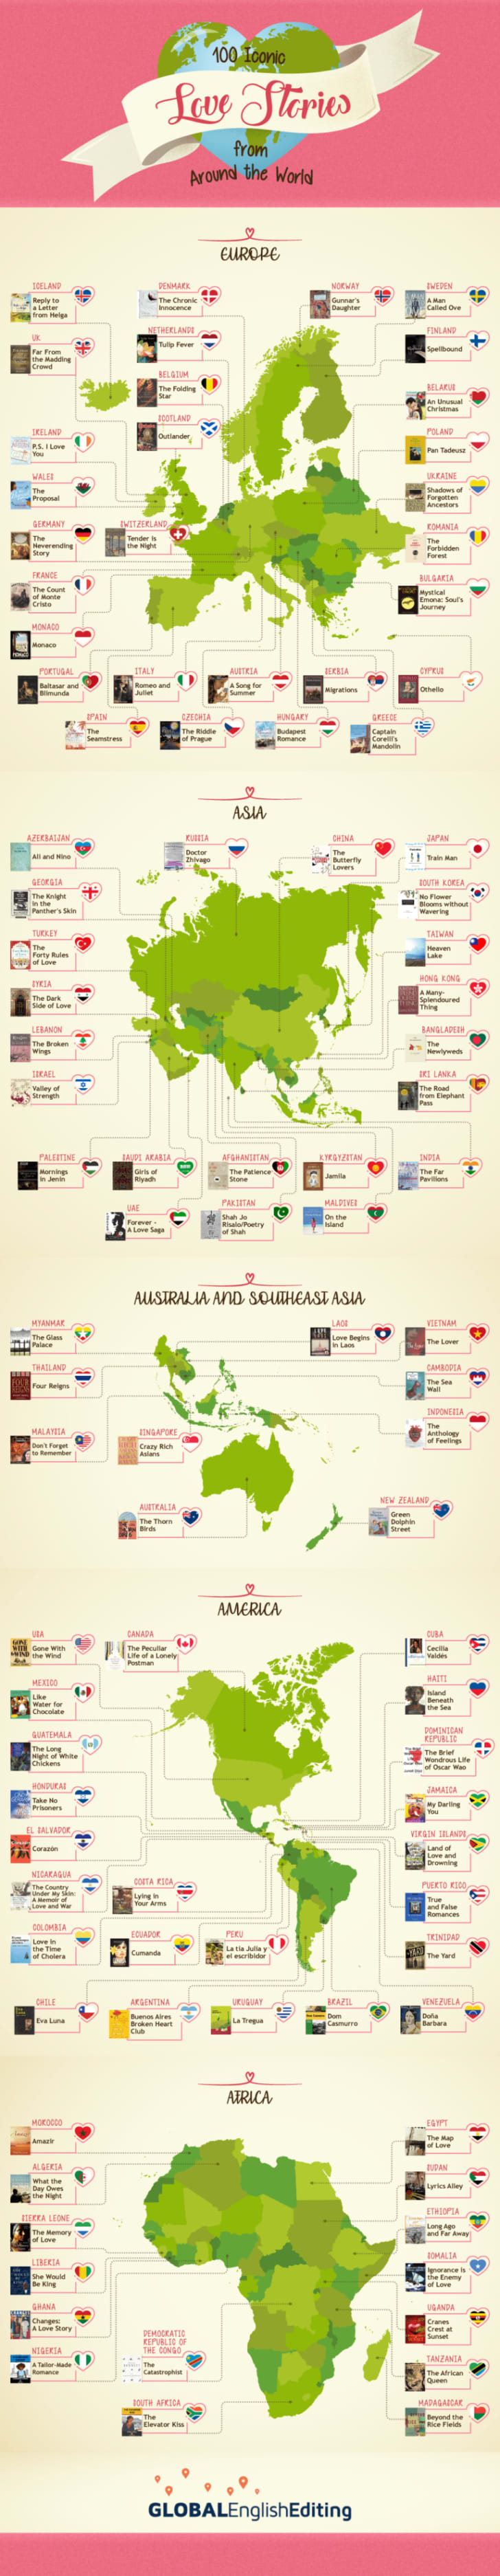 Map of love stories set in different countries.